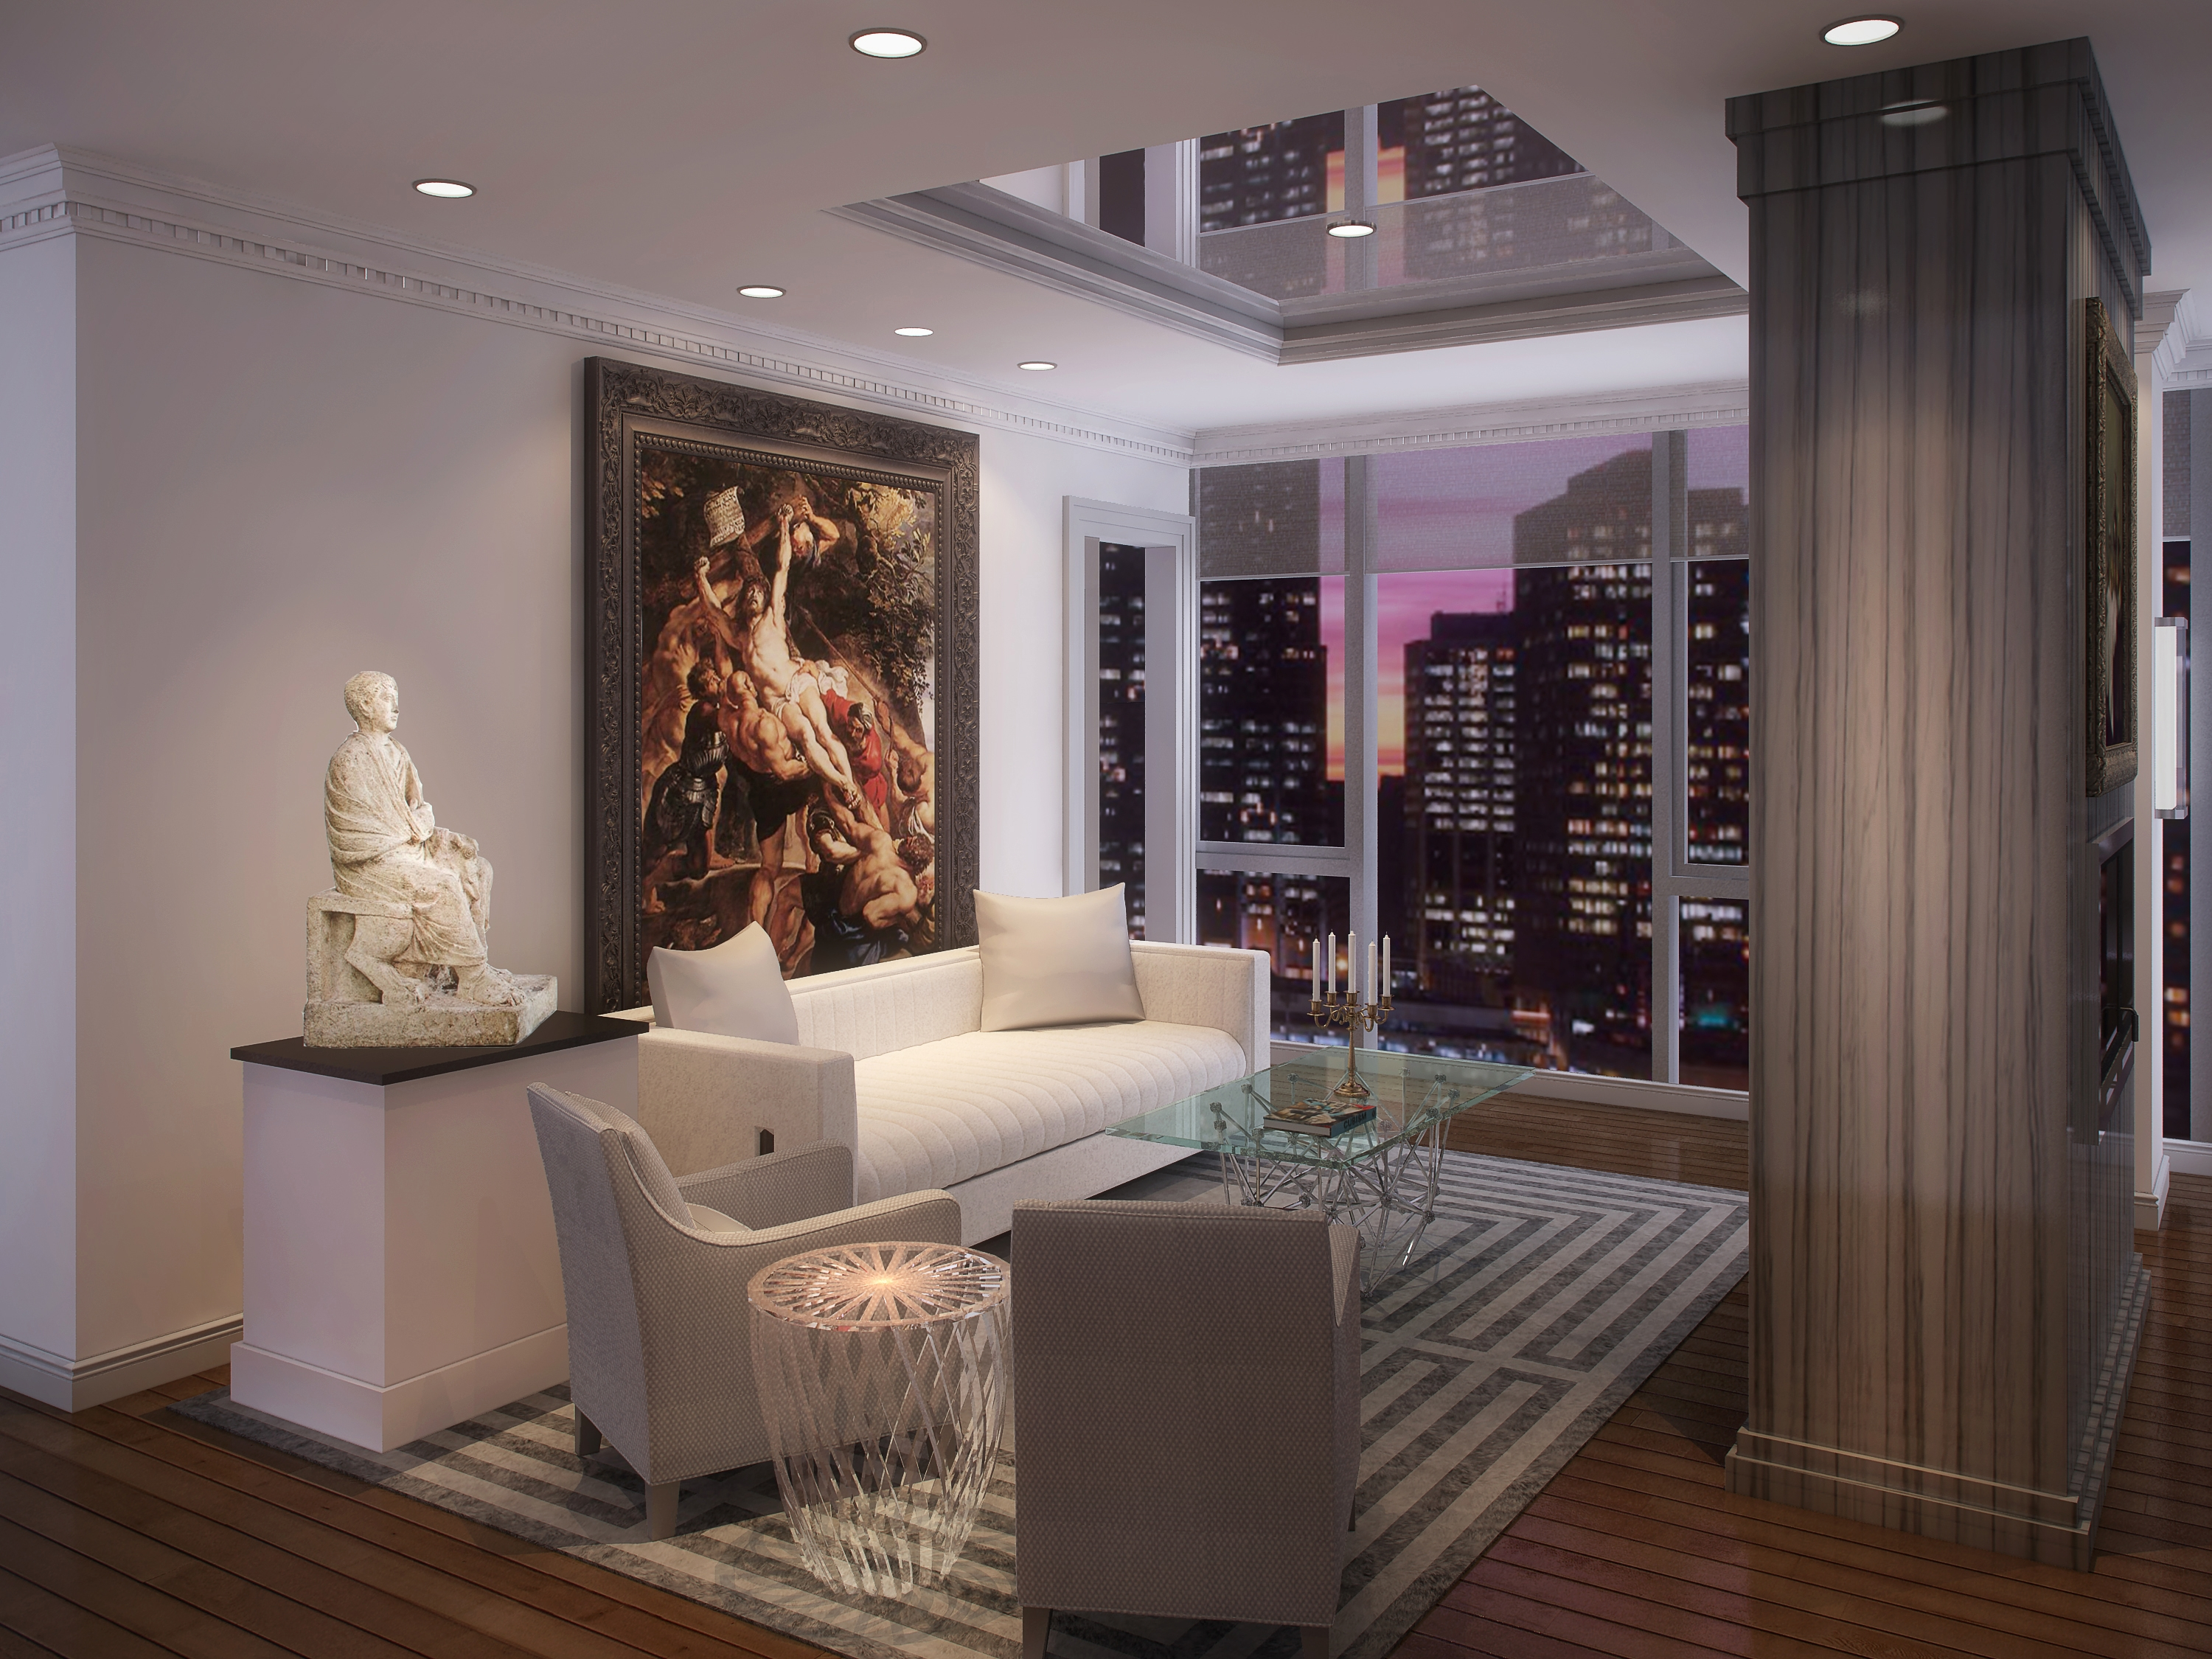 Chicago Luxury - 4 EAST ELM- LAYOUT 2 LIVING ROOM - HI-RES